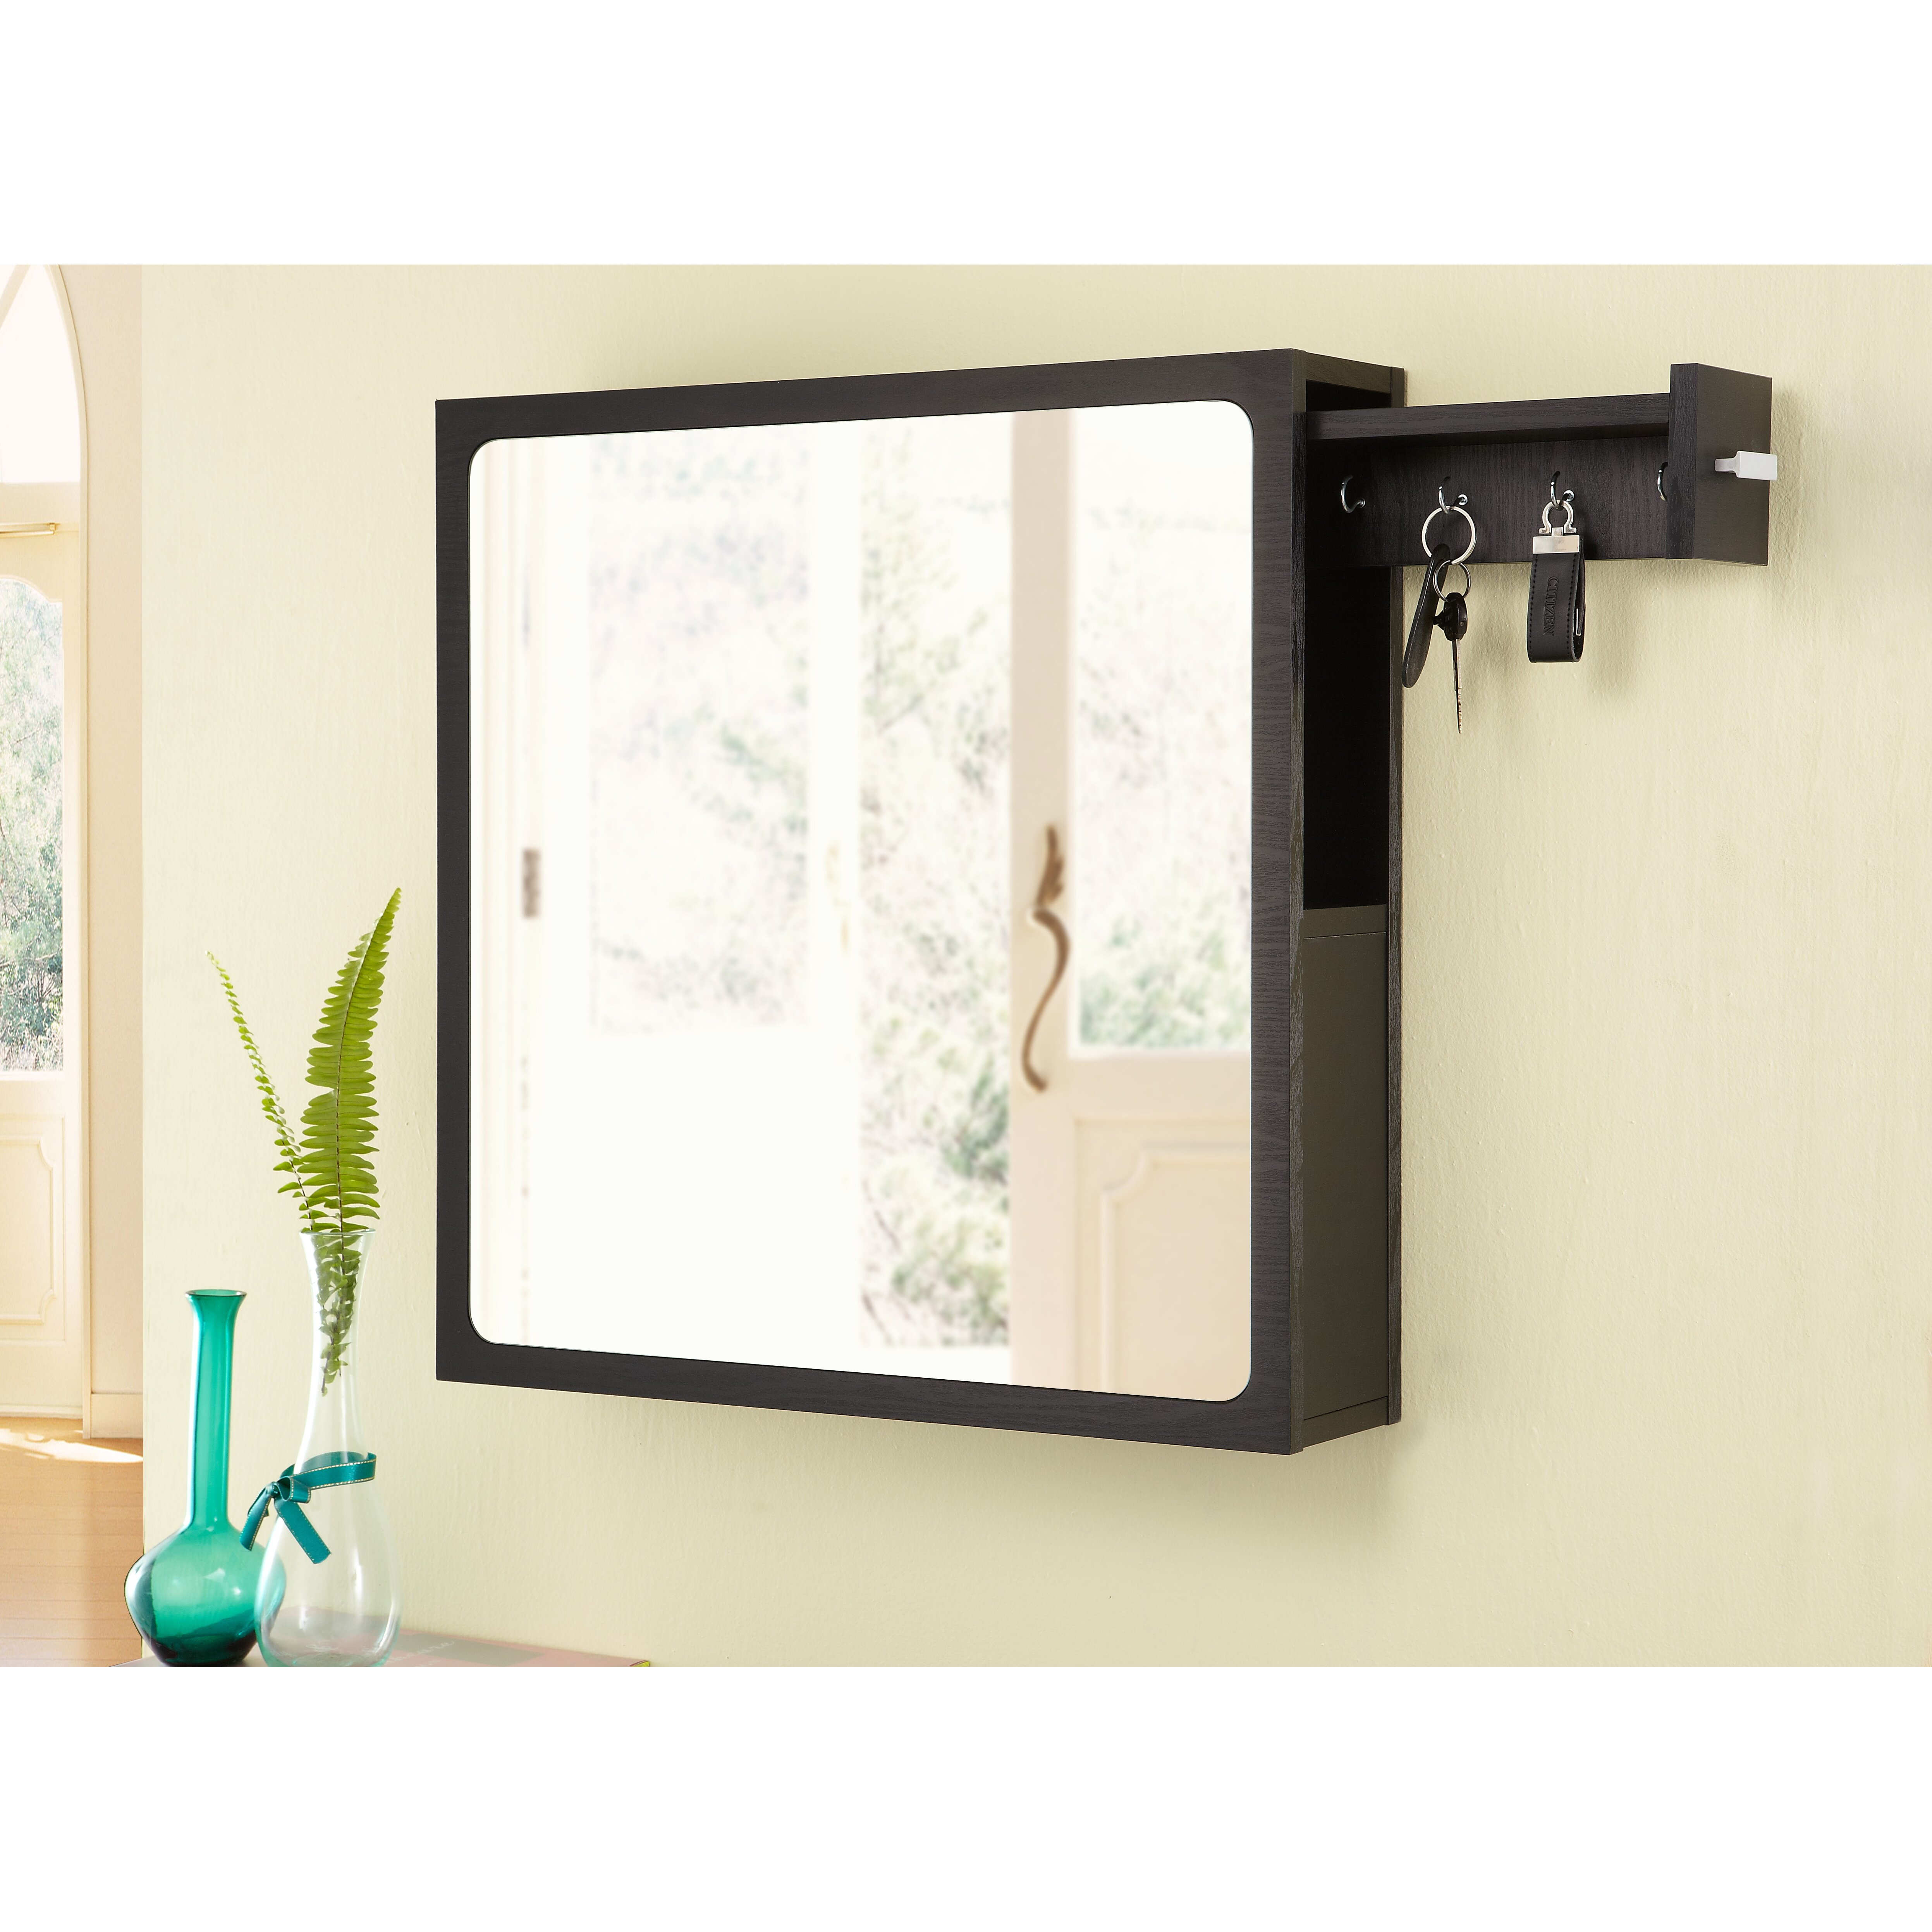 Hokku designs monte wall mounted jewelry armoire with for Wall mounted mirror